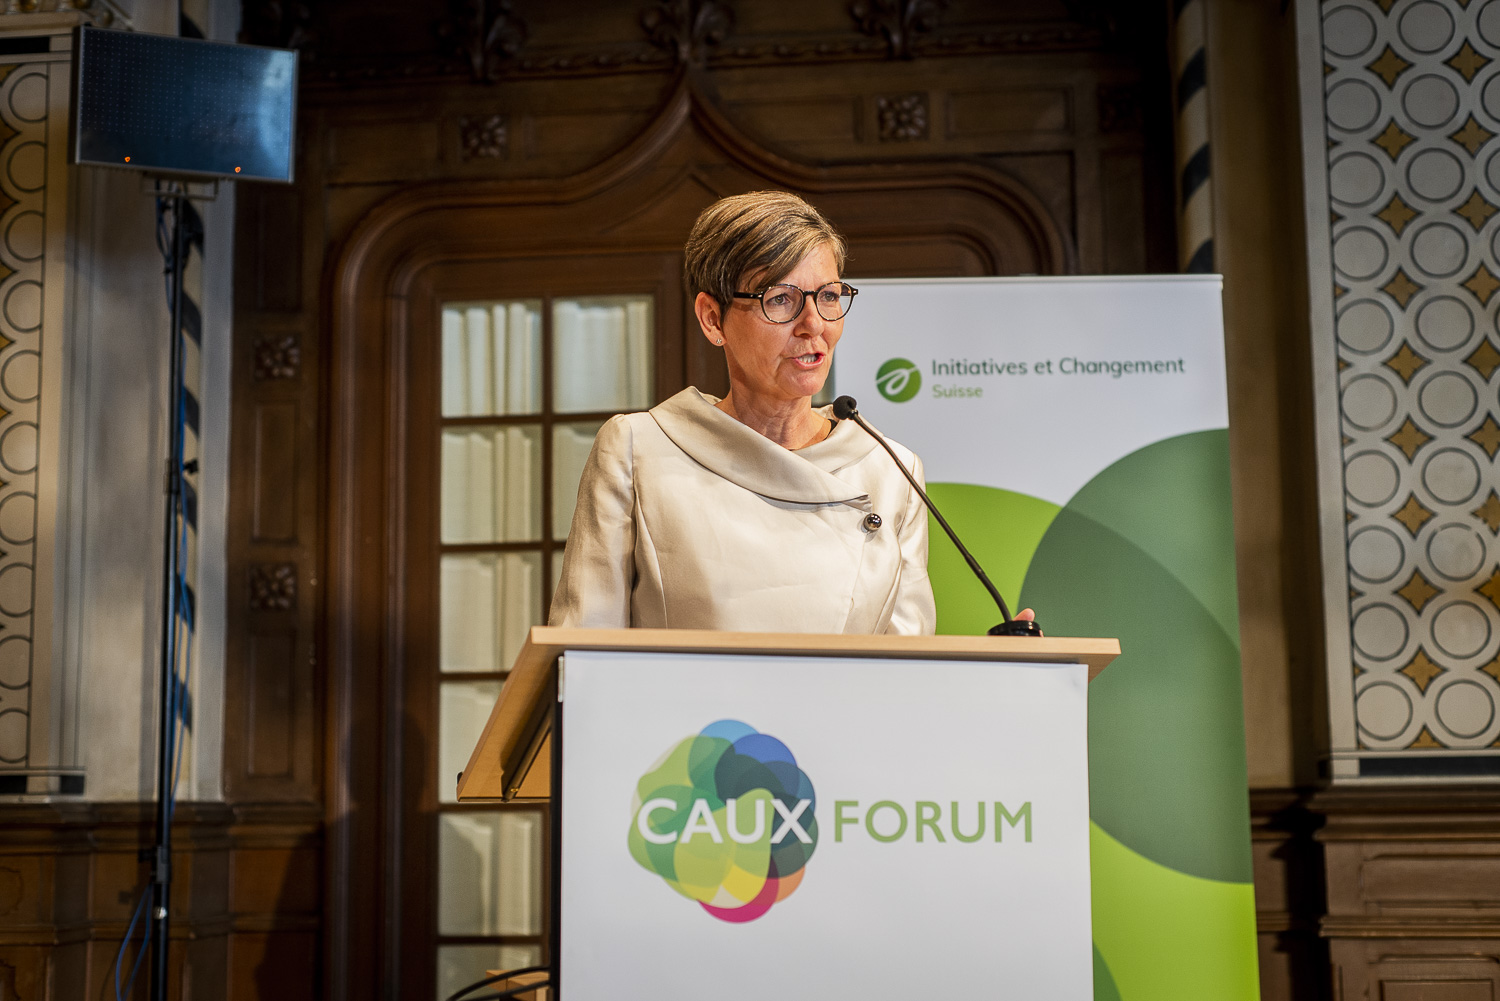 Barbara Hintermann speaking at the 2019 Caux Forum